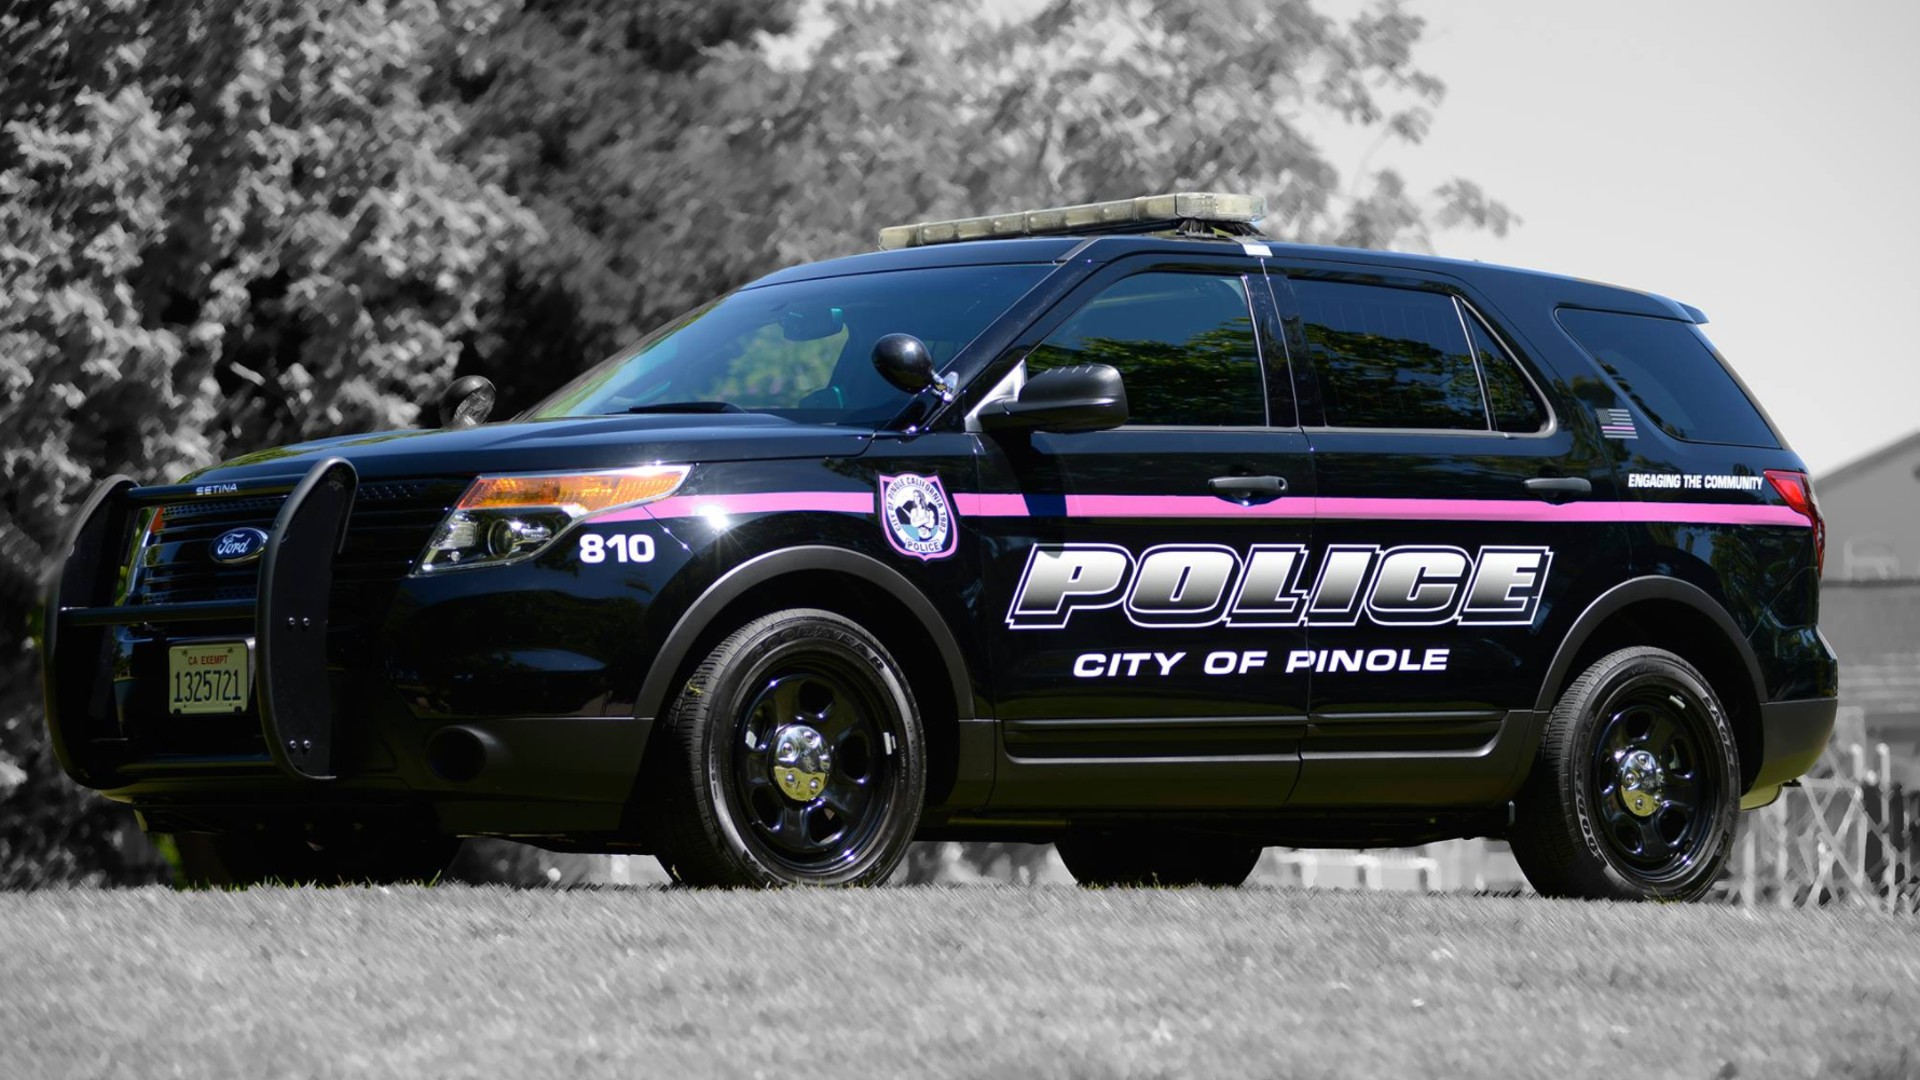 A Pinole Police Department SUV is seen in a photo posted on the agency's Facebook page.